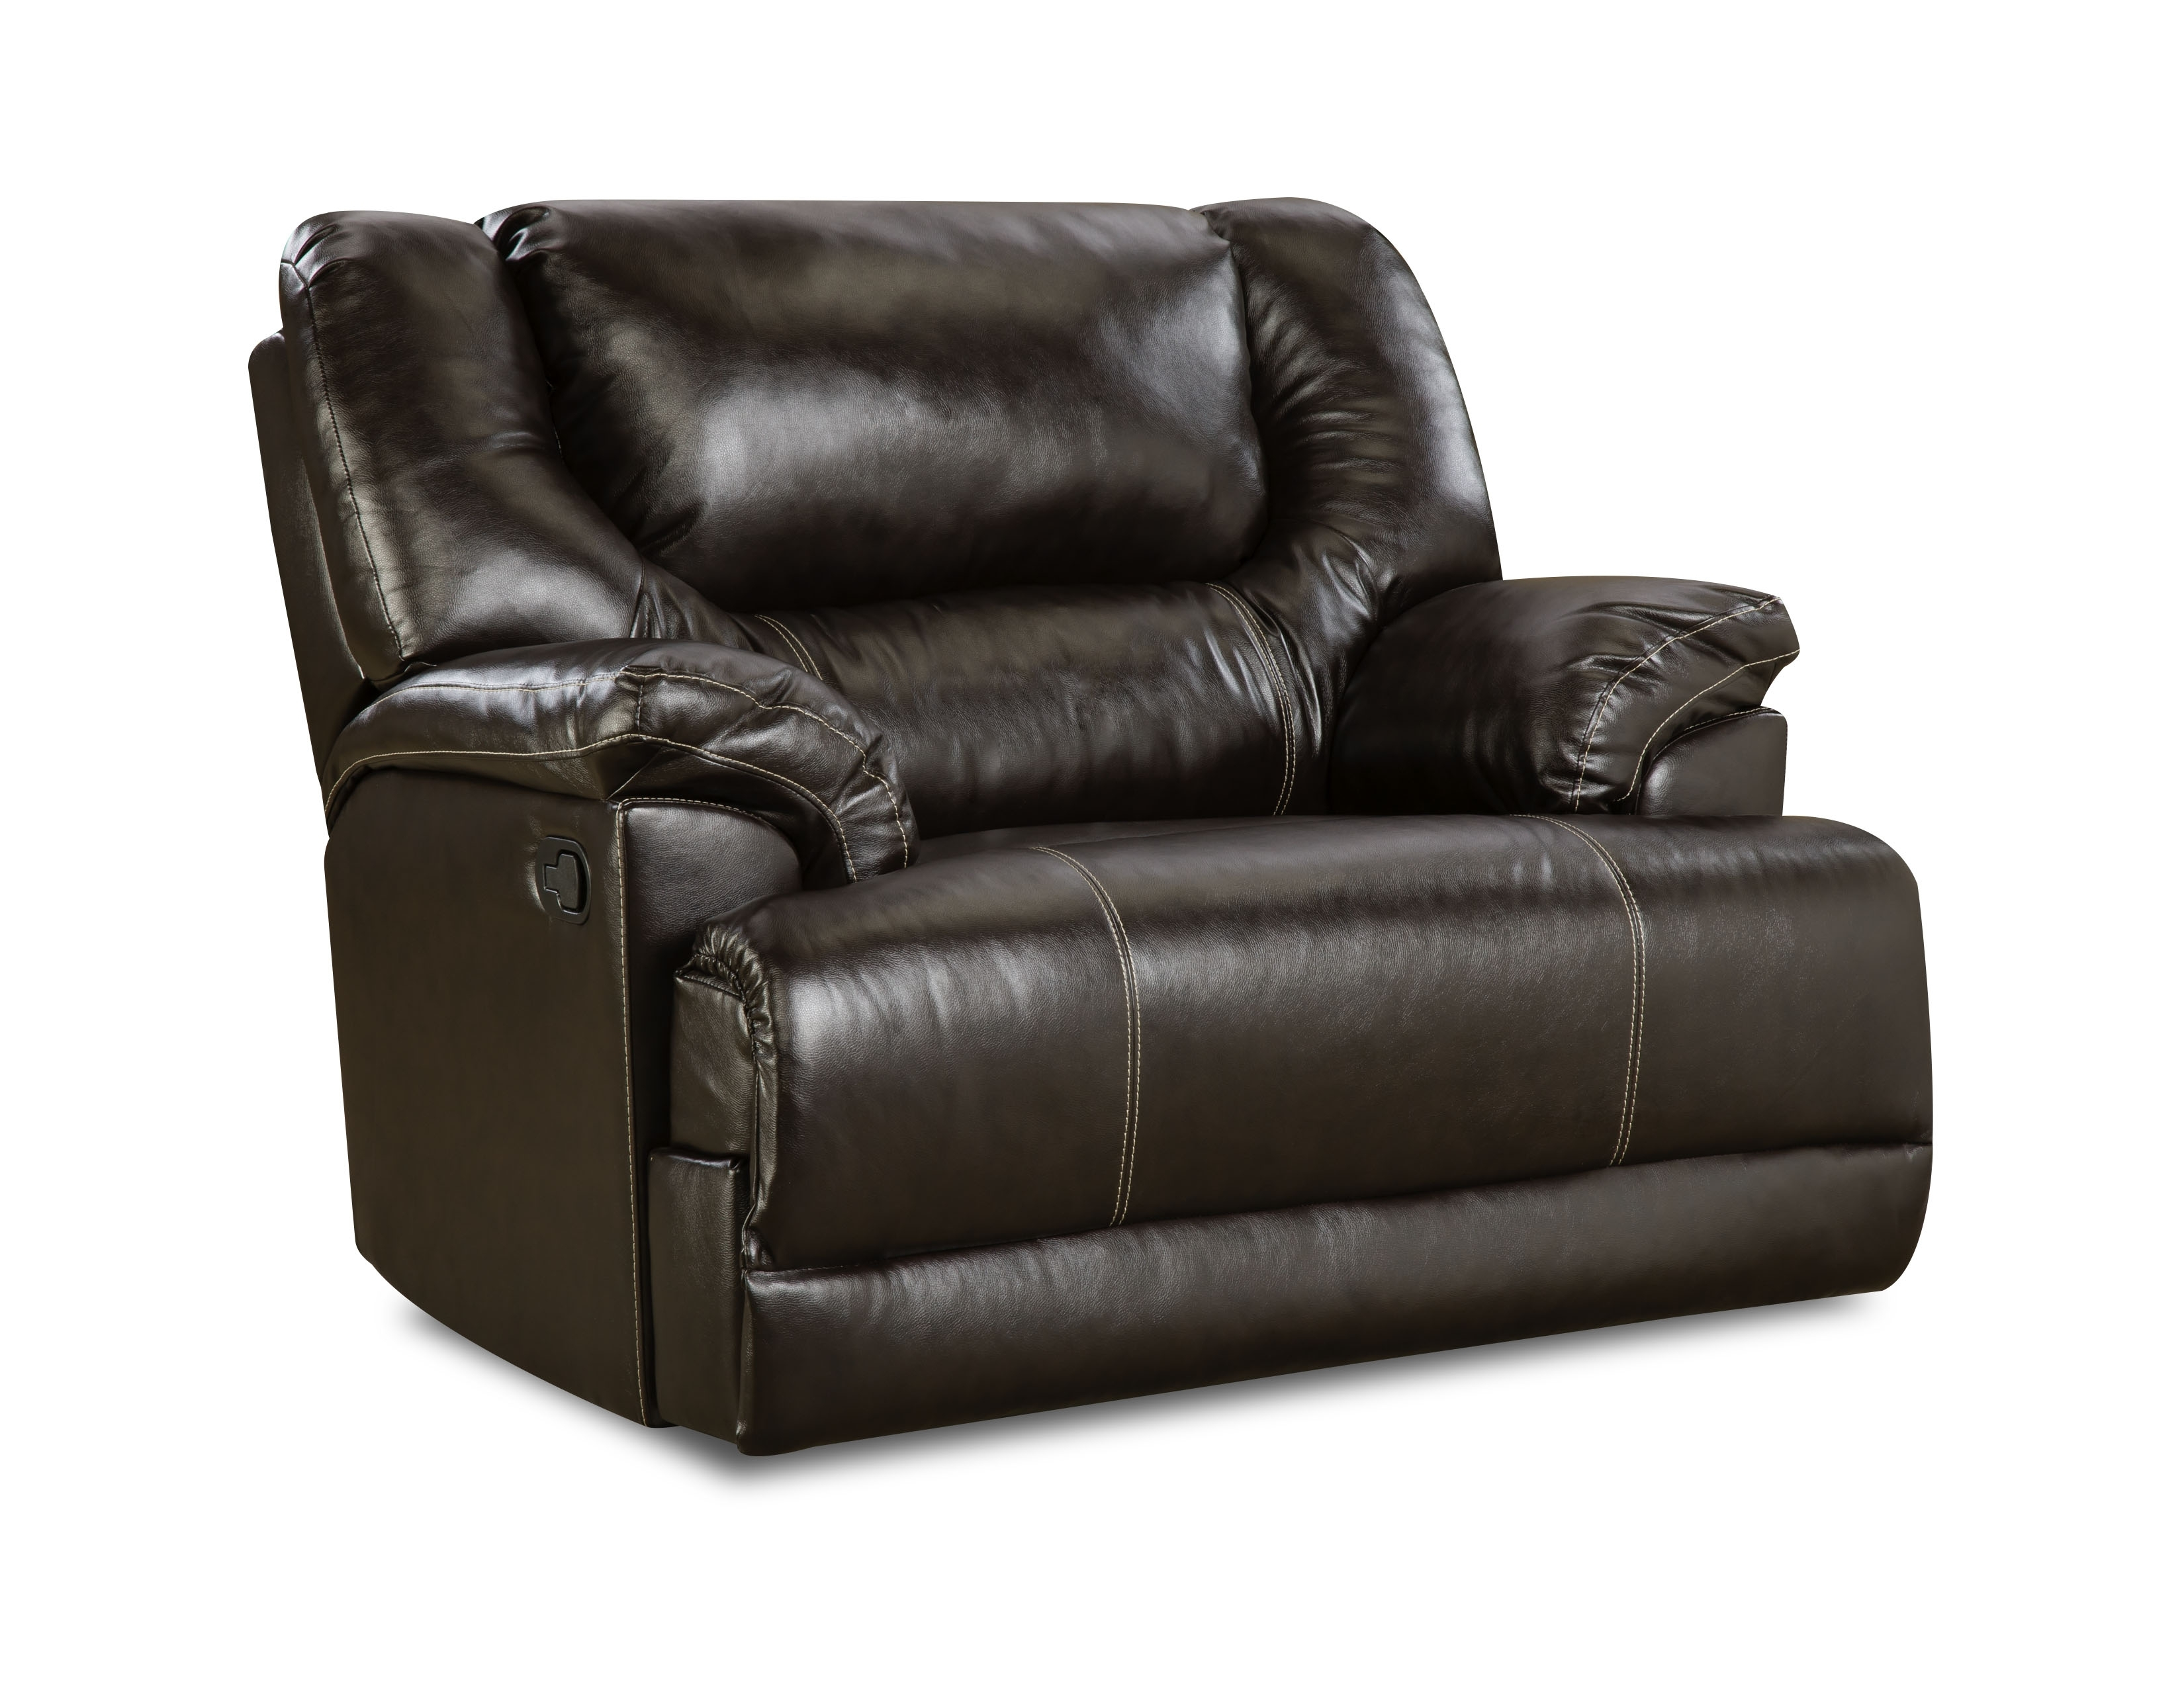 sofa bed canada sears 2 seater removable covers 10 best ideas sofas